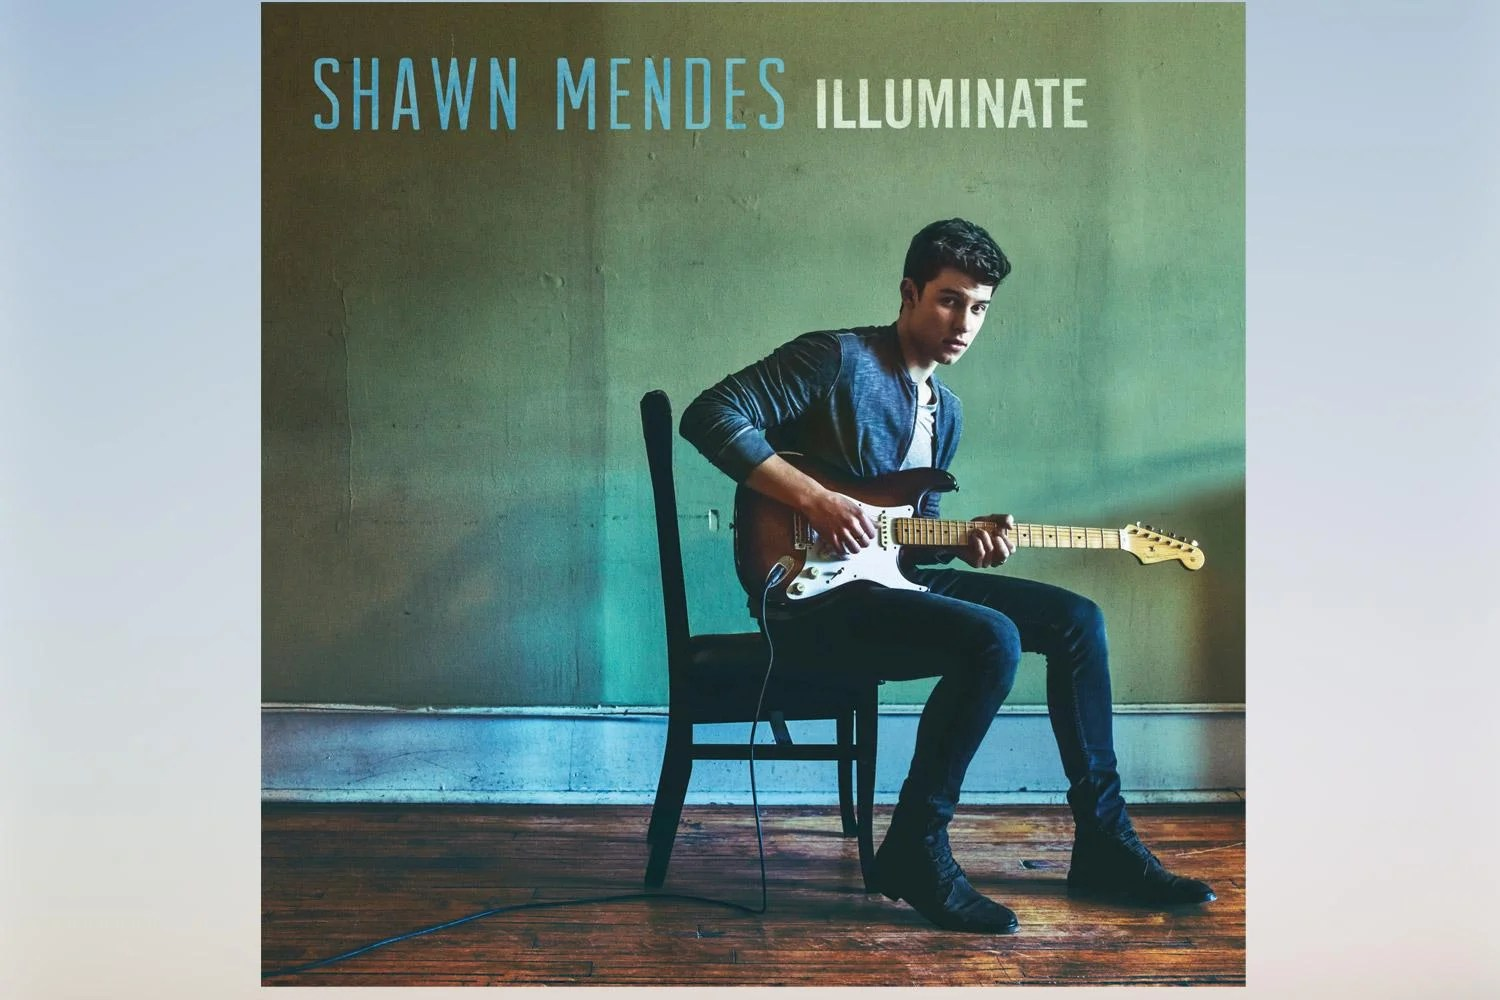 Shawn Mendes  Illuminate review as a product highly impressive  London Evening Standard